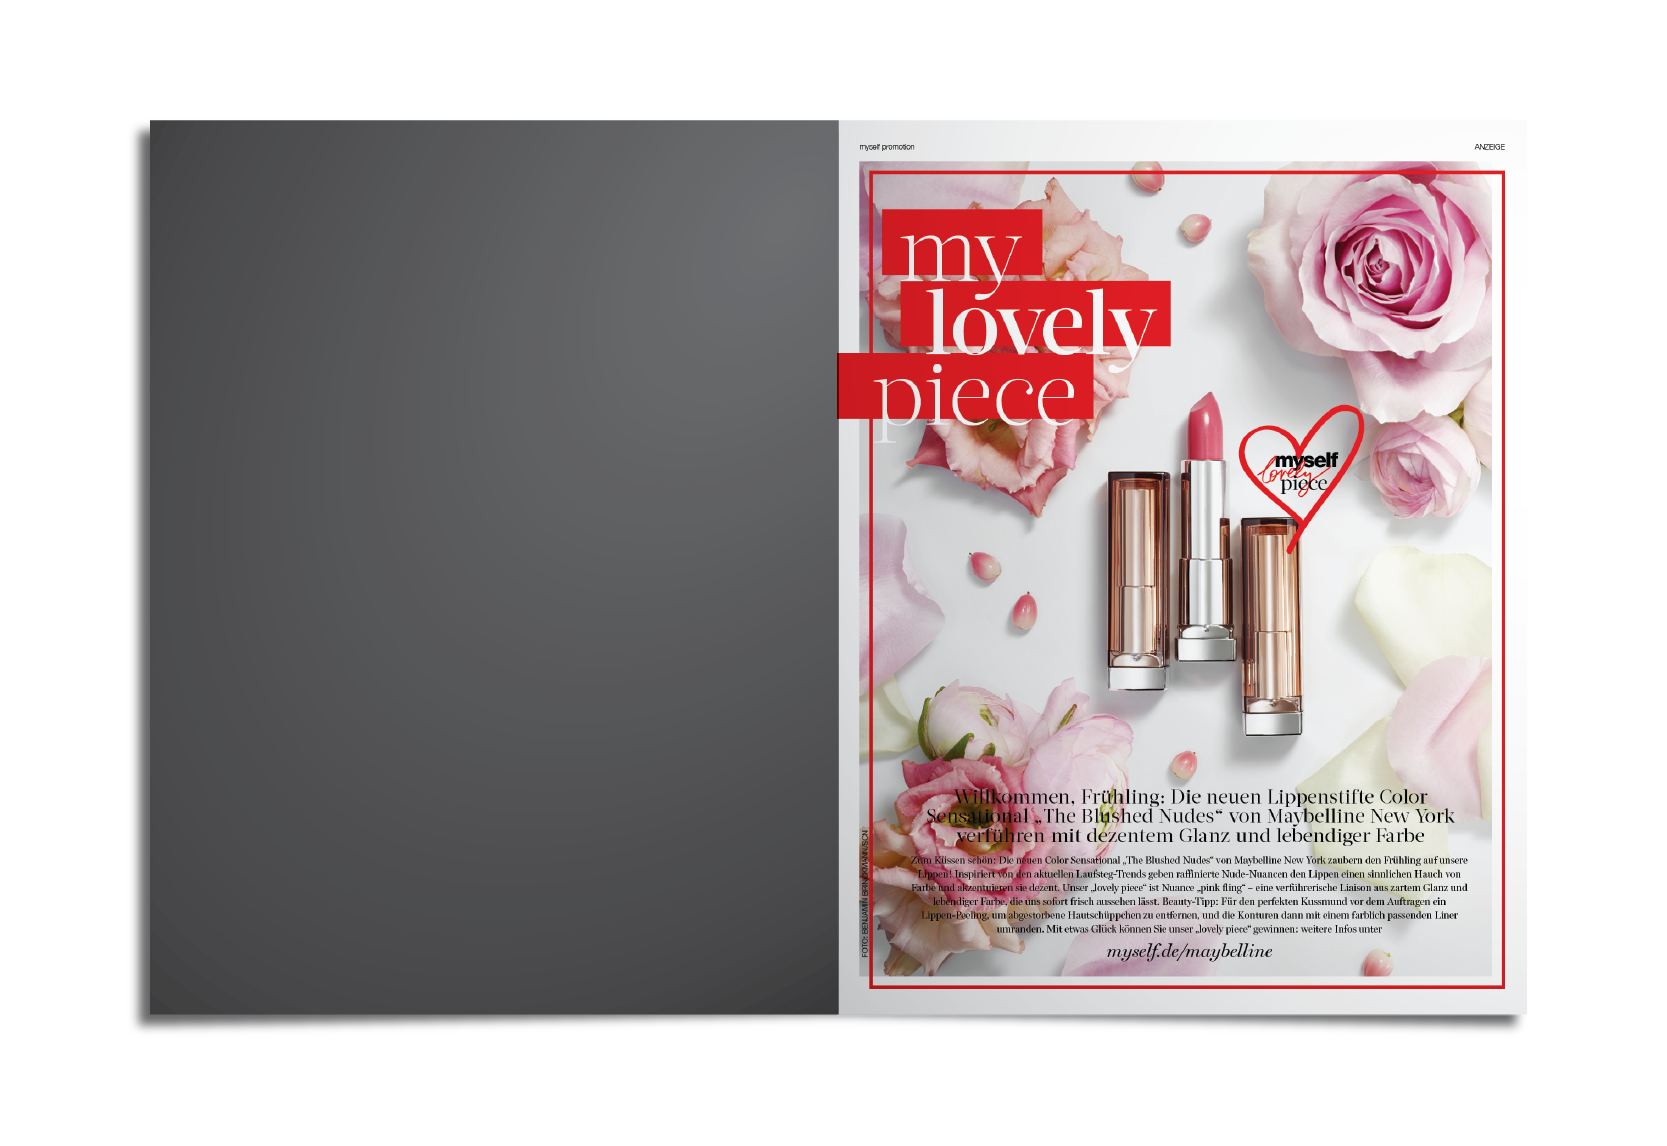 maybelline_ms_2016-01.png